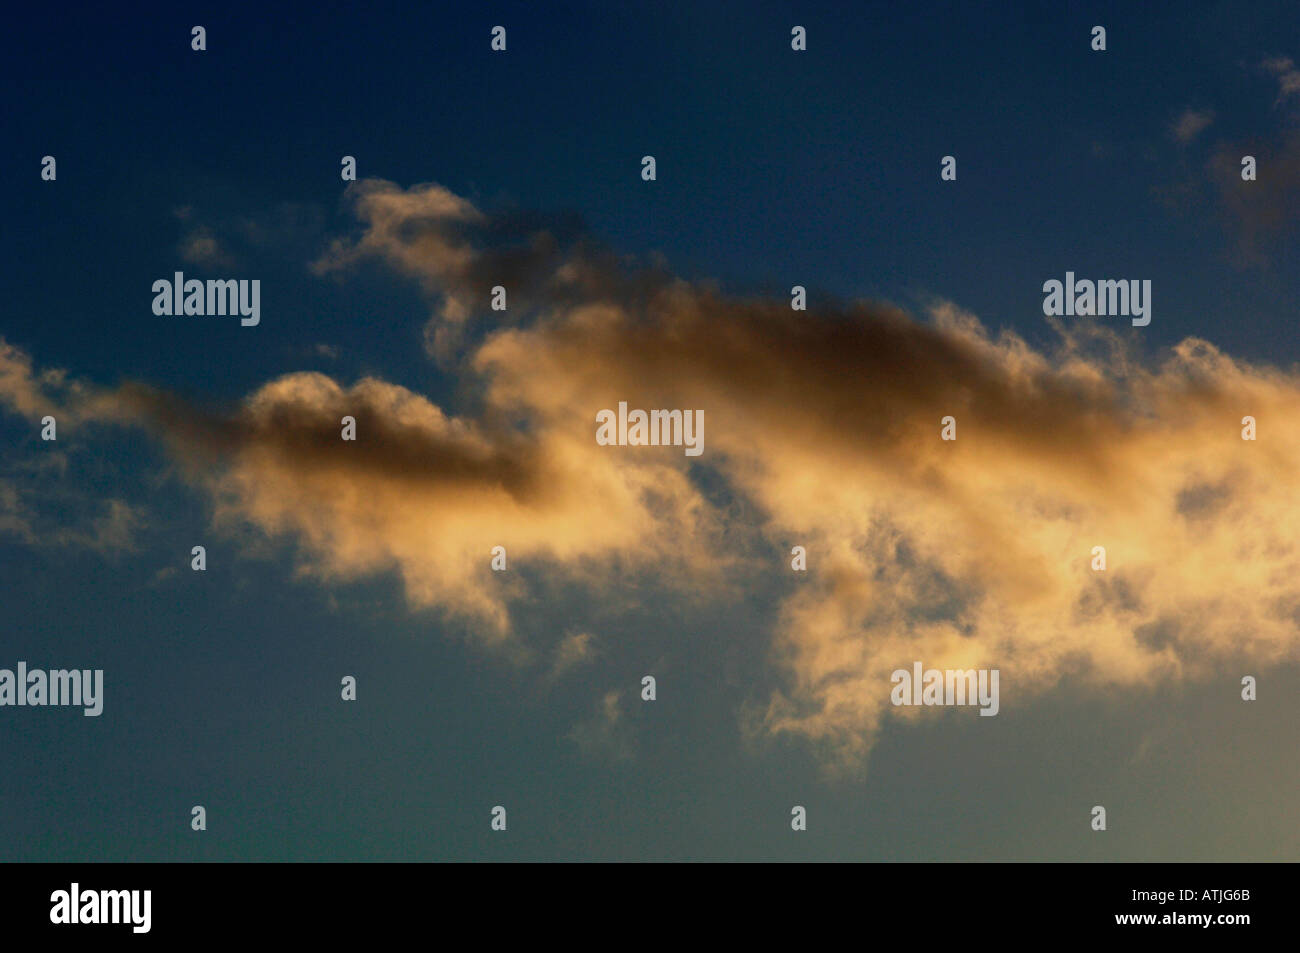 Evening Sky & Warm Coloured Clouds Stock Photo